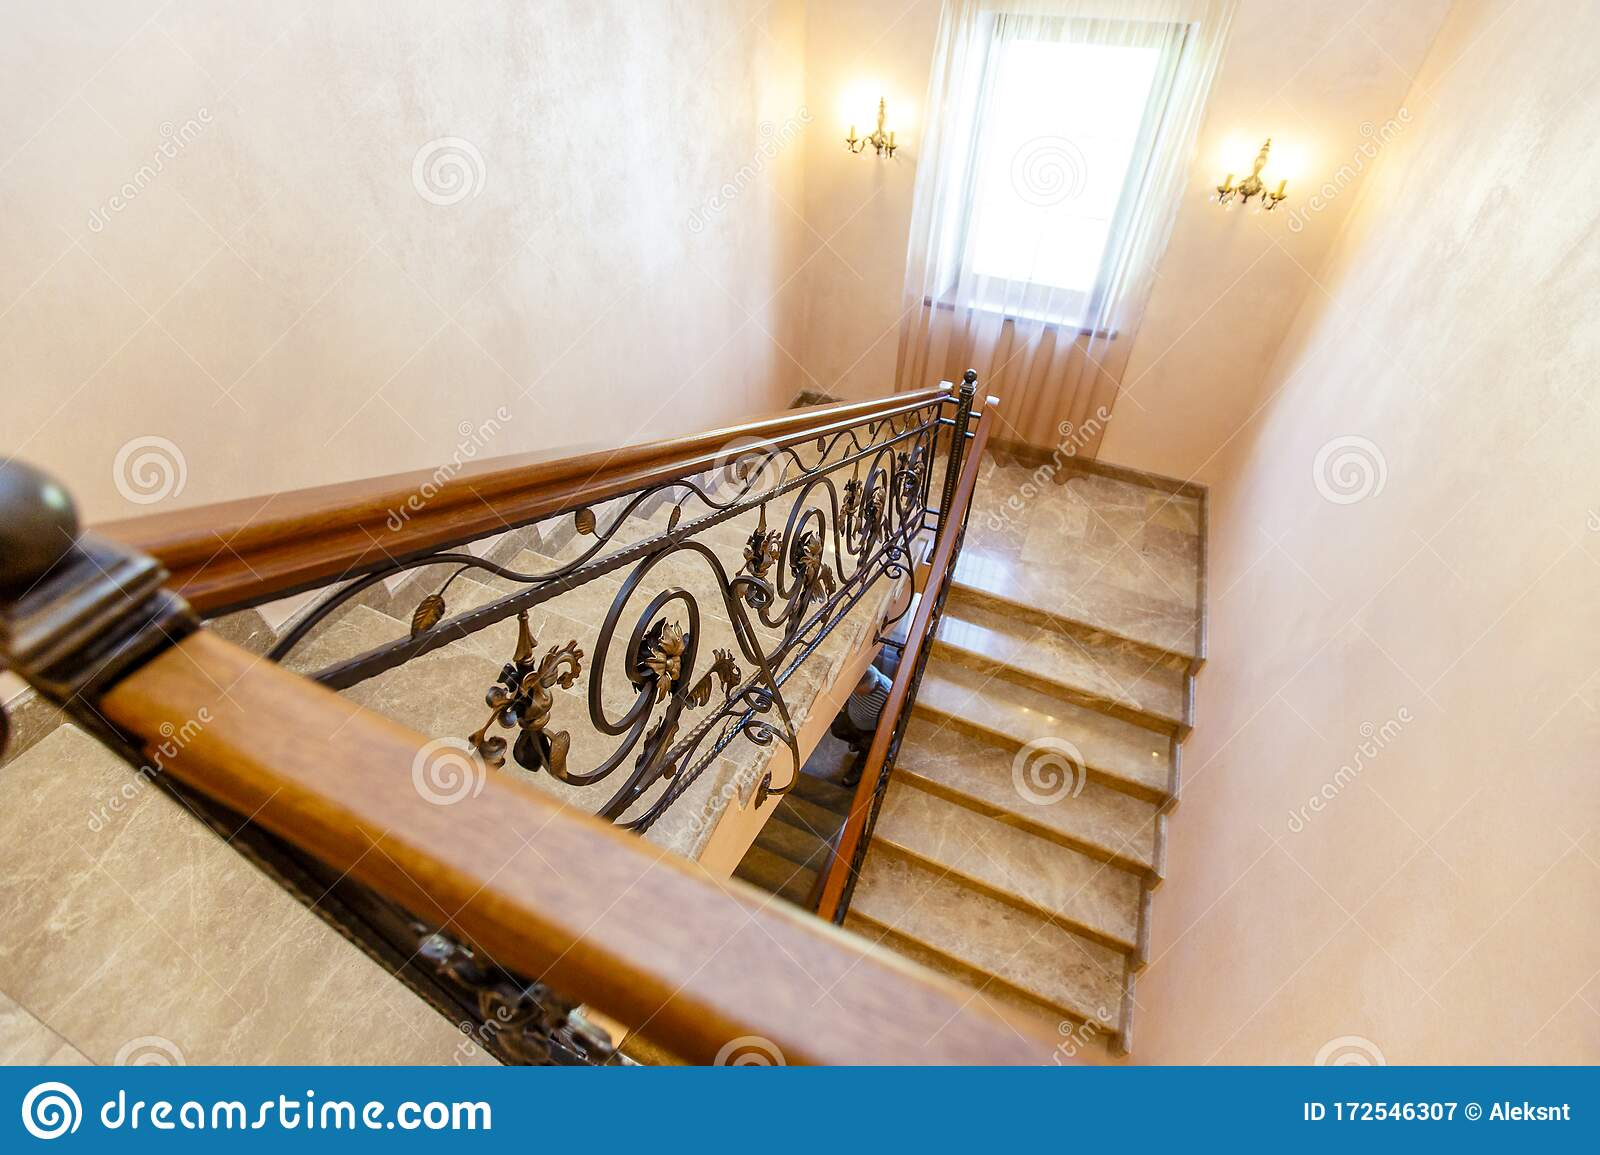 Image of: Wrought Iron Staircase In The Cottage Marble Steps Black Wrought Iron Stairs With Floral Ornaments Mahogany Wooden Railing Stock Image Image Of Decorative Construction 172546307